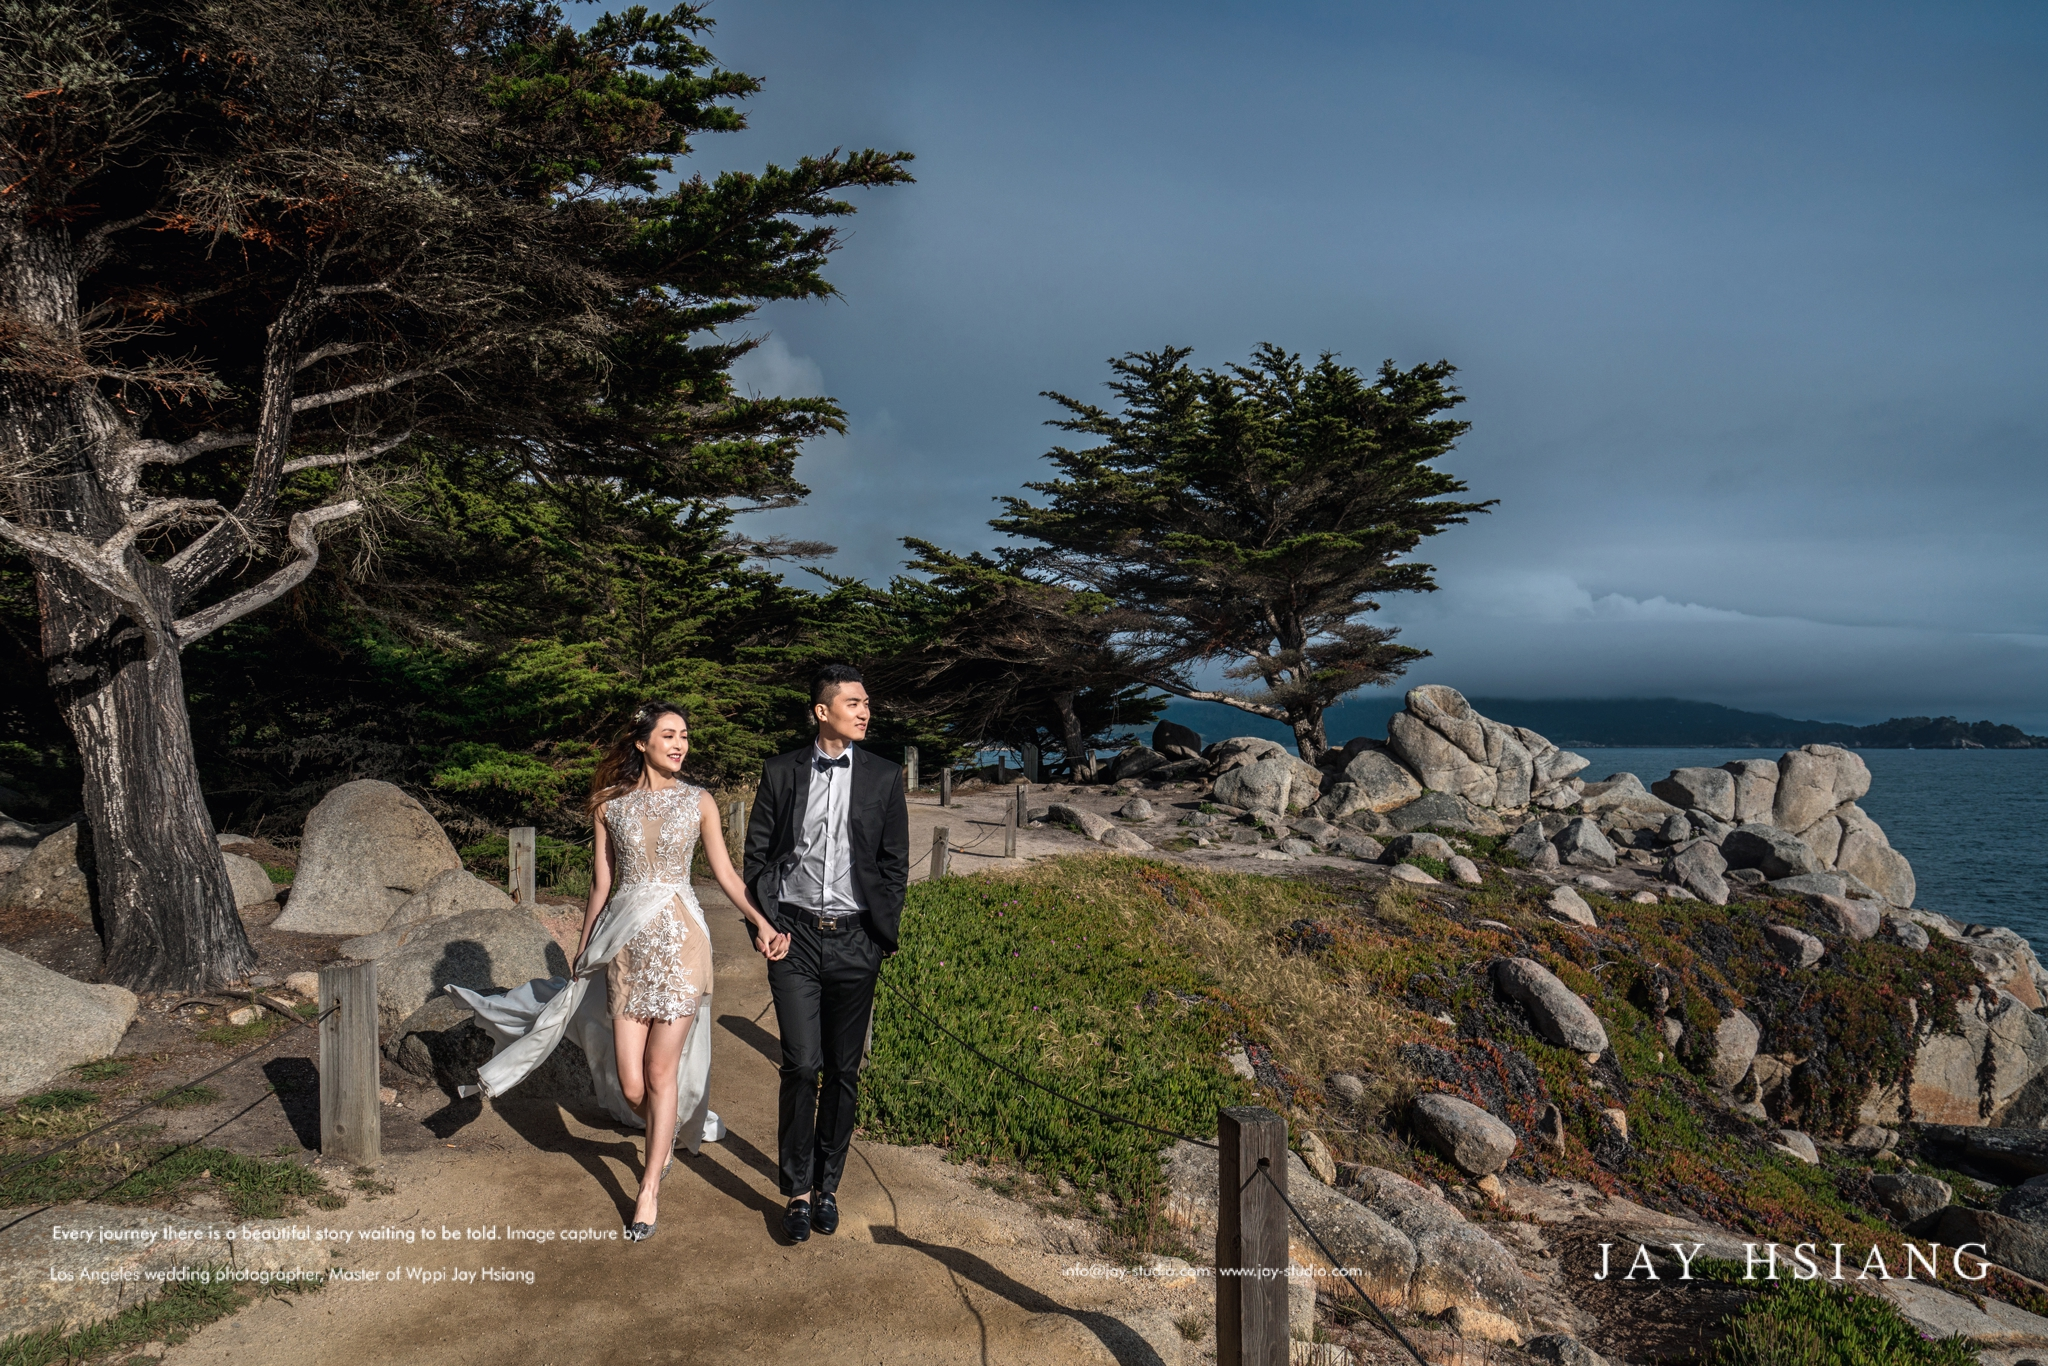 monterey 17 mile drive pre wedding photo